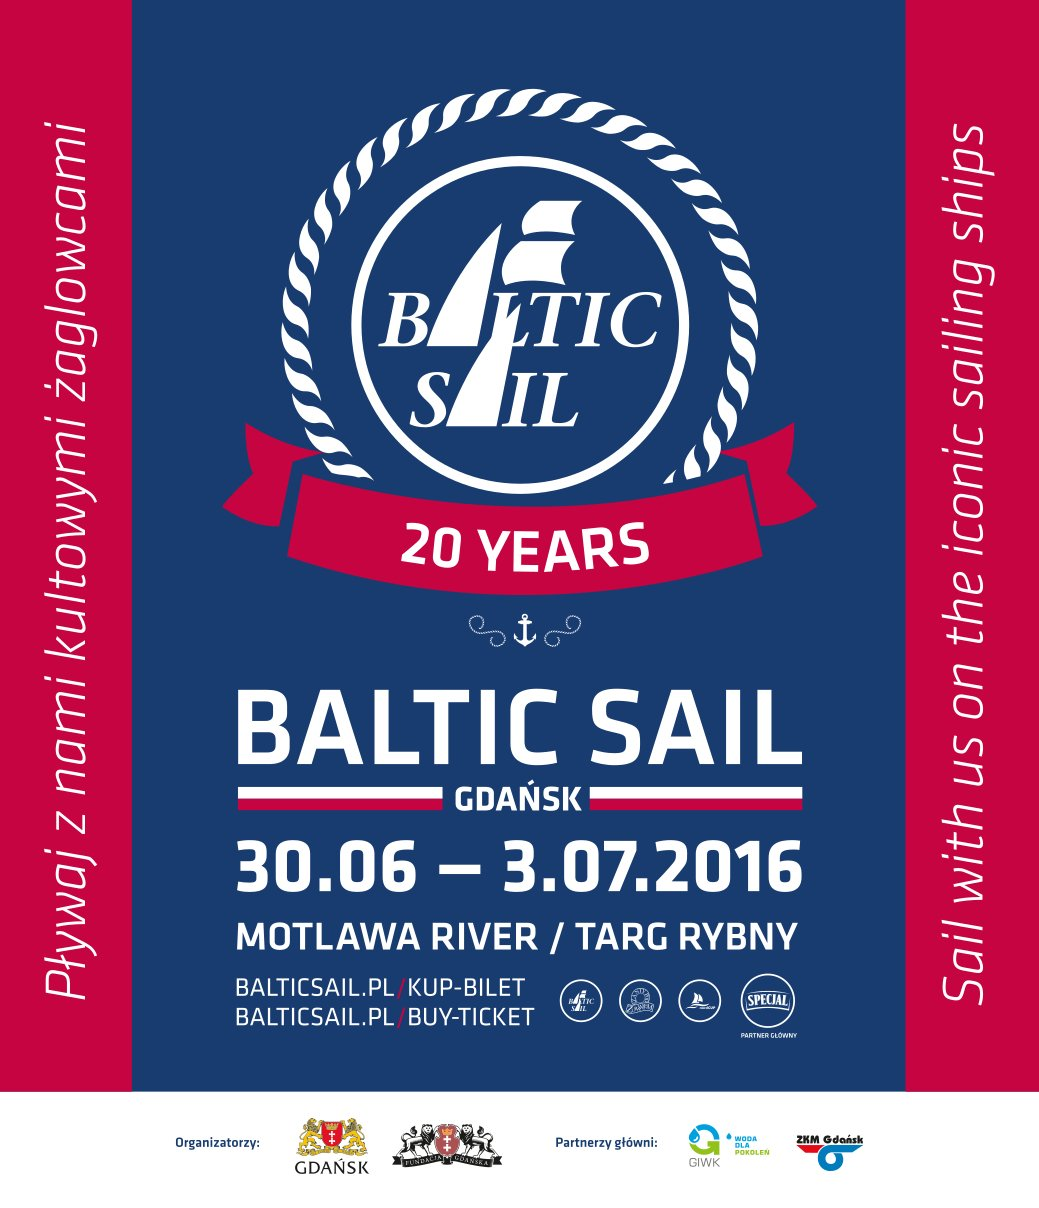 baltic sail gdansk 2016